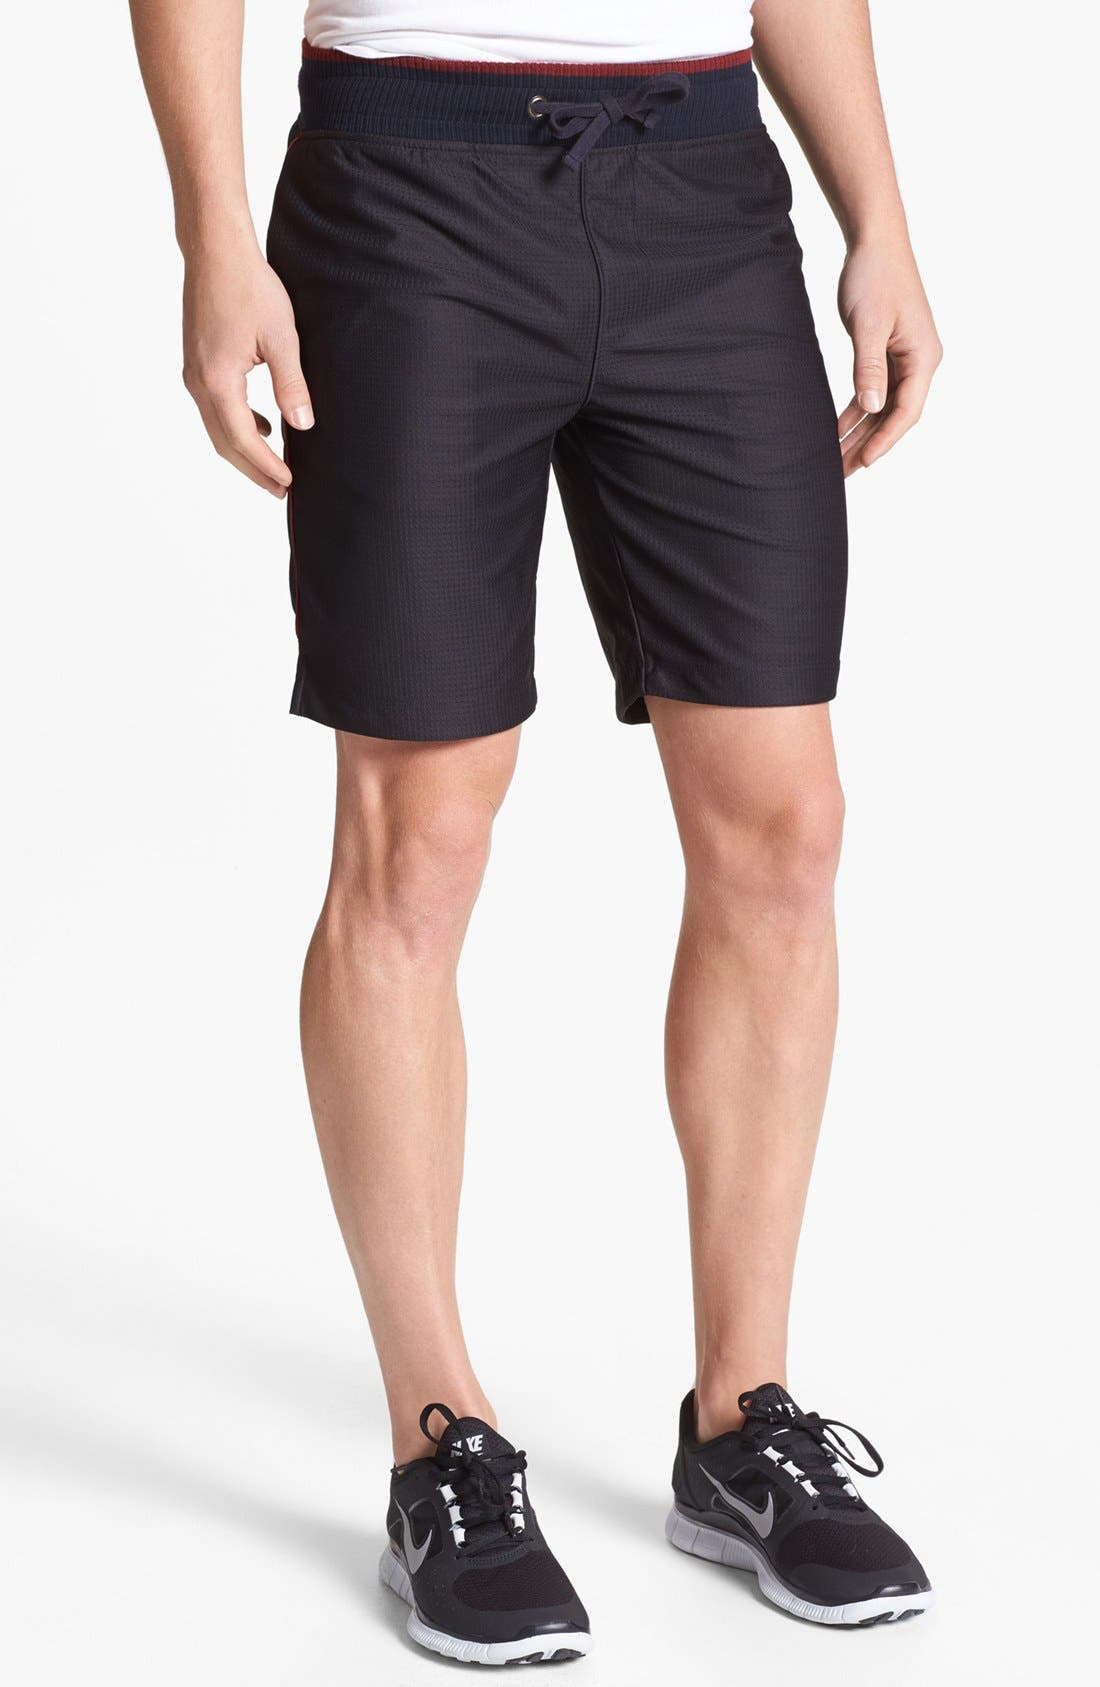 Main Image - Number:LAB 'cool:TECH' Double Layer Drawstring Shorts